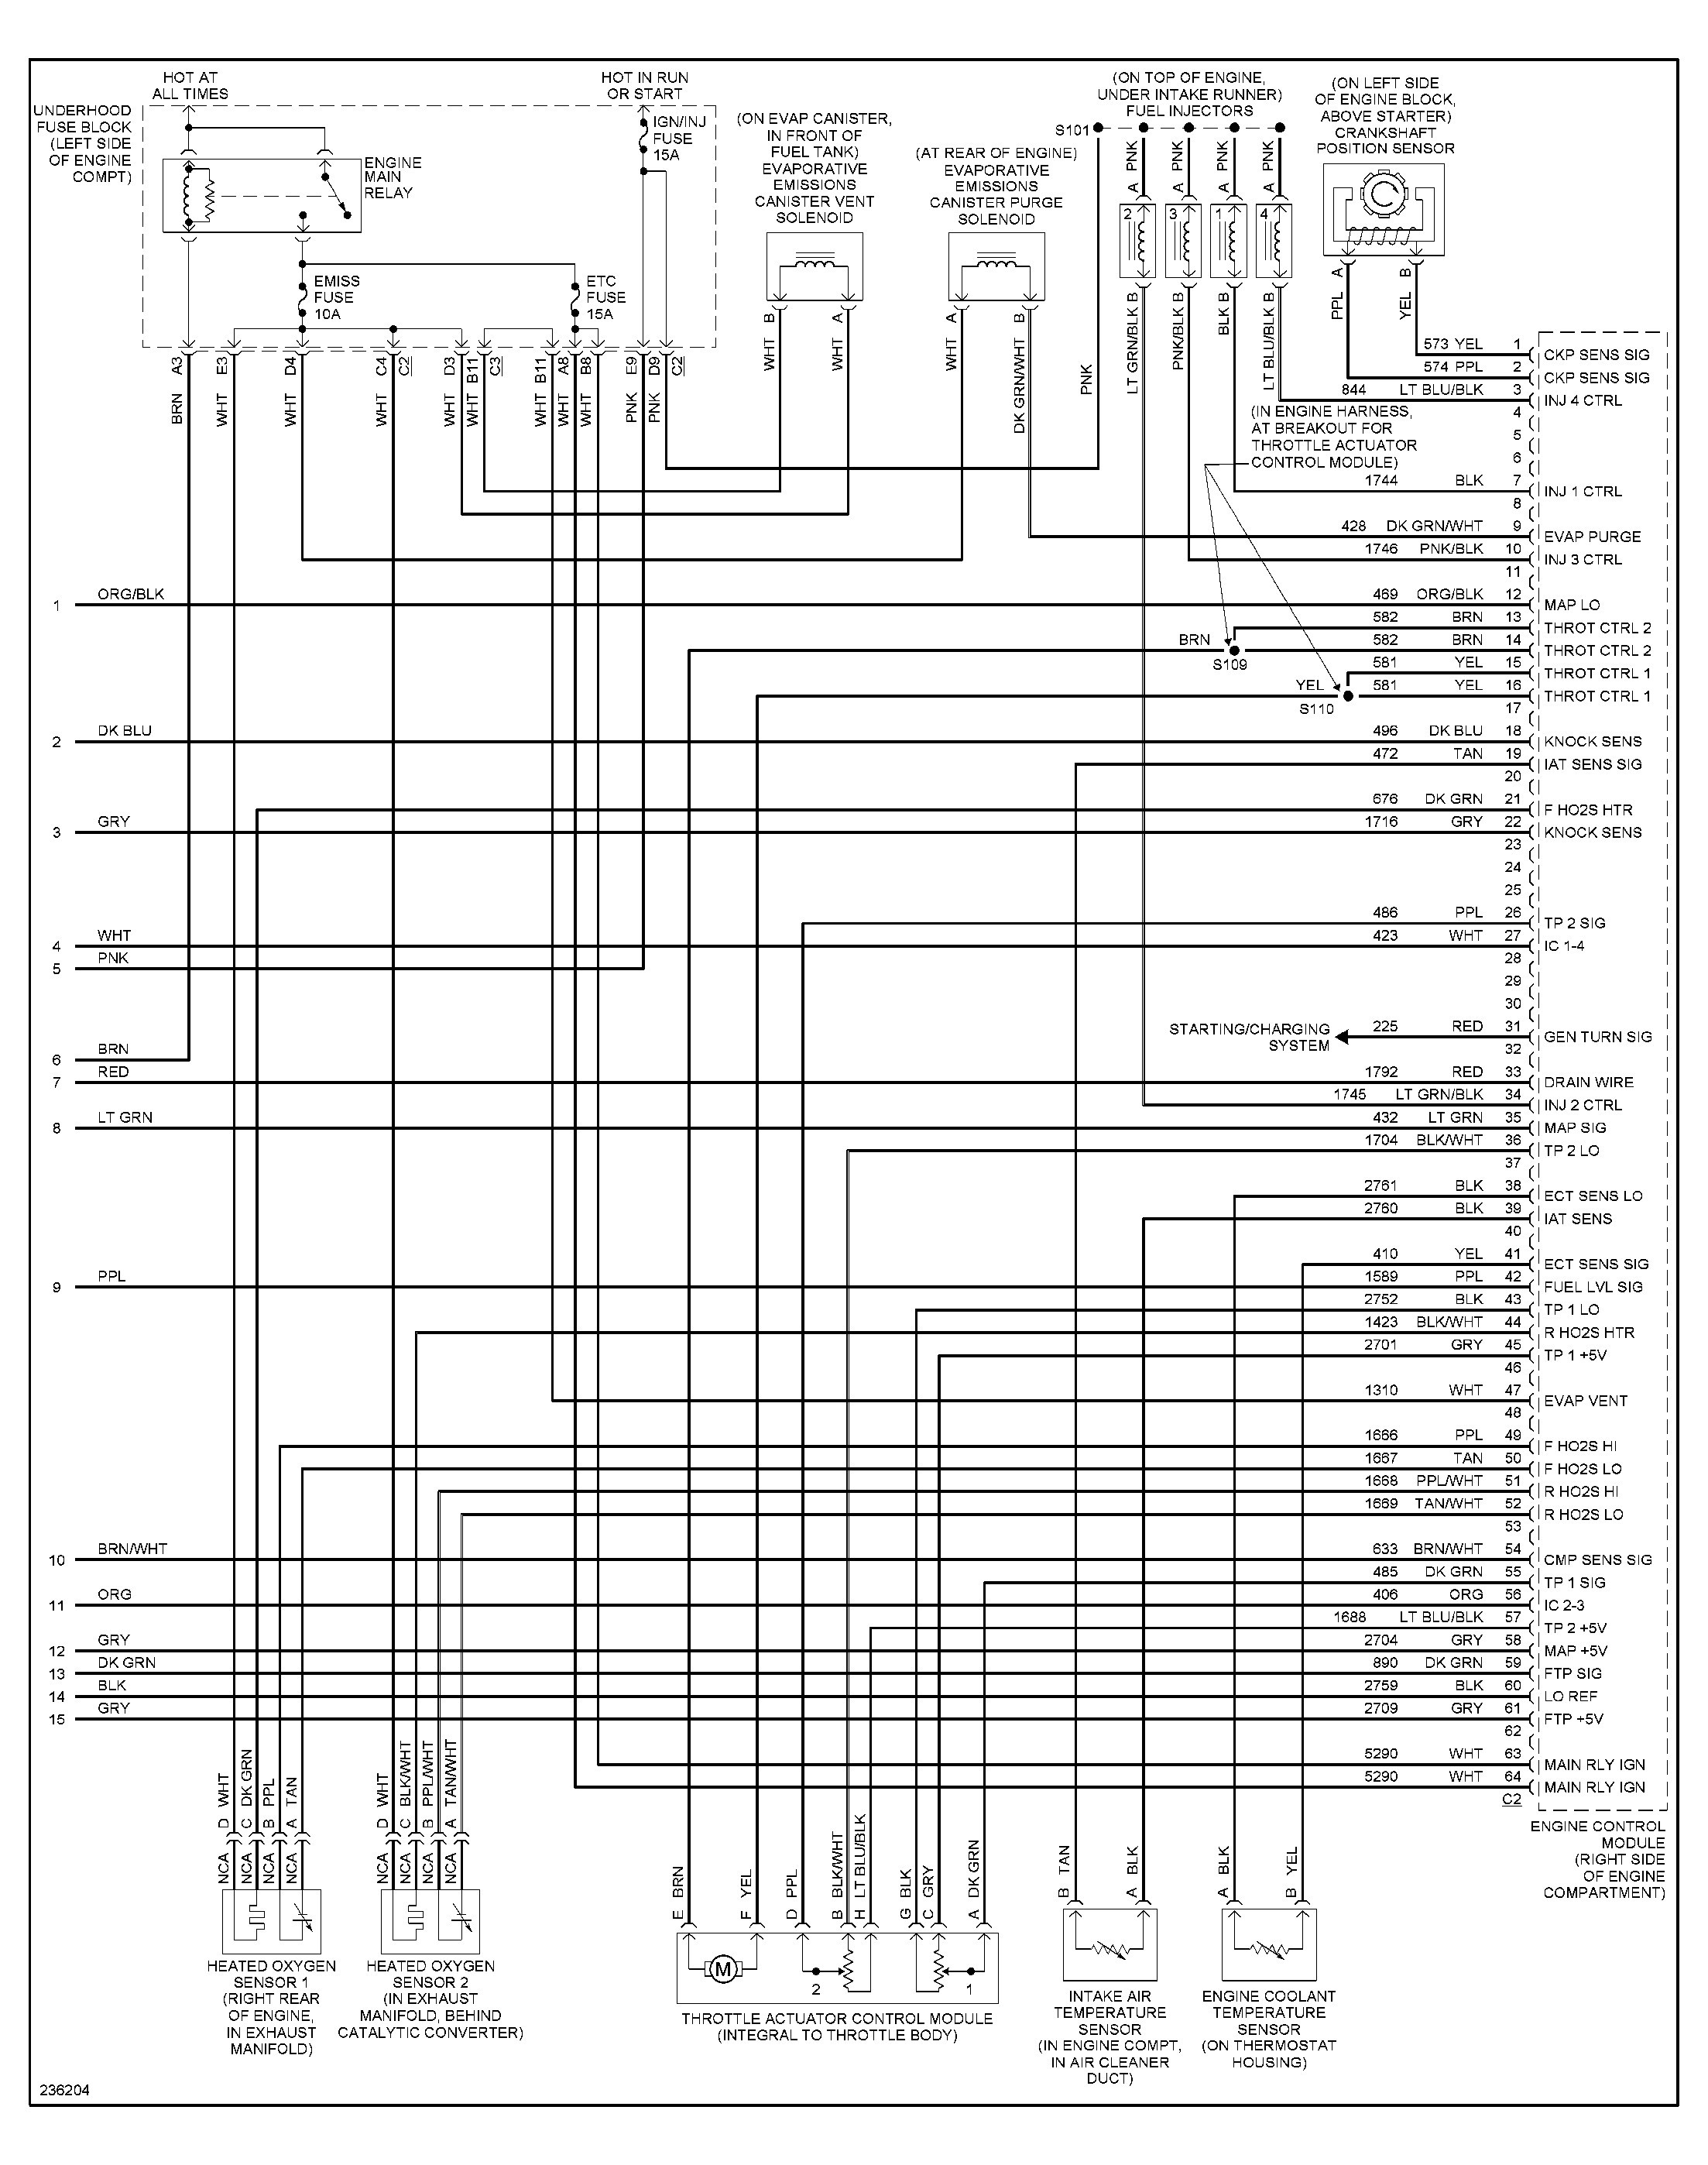 2003 Wiring Diagram Saturn Vue Simple Wiring Diagram Detailed 2004  Chevrolet Classic Wiring Diagram 2004 Saturn Vue Diagram Under Dash Wiring